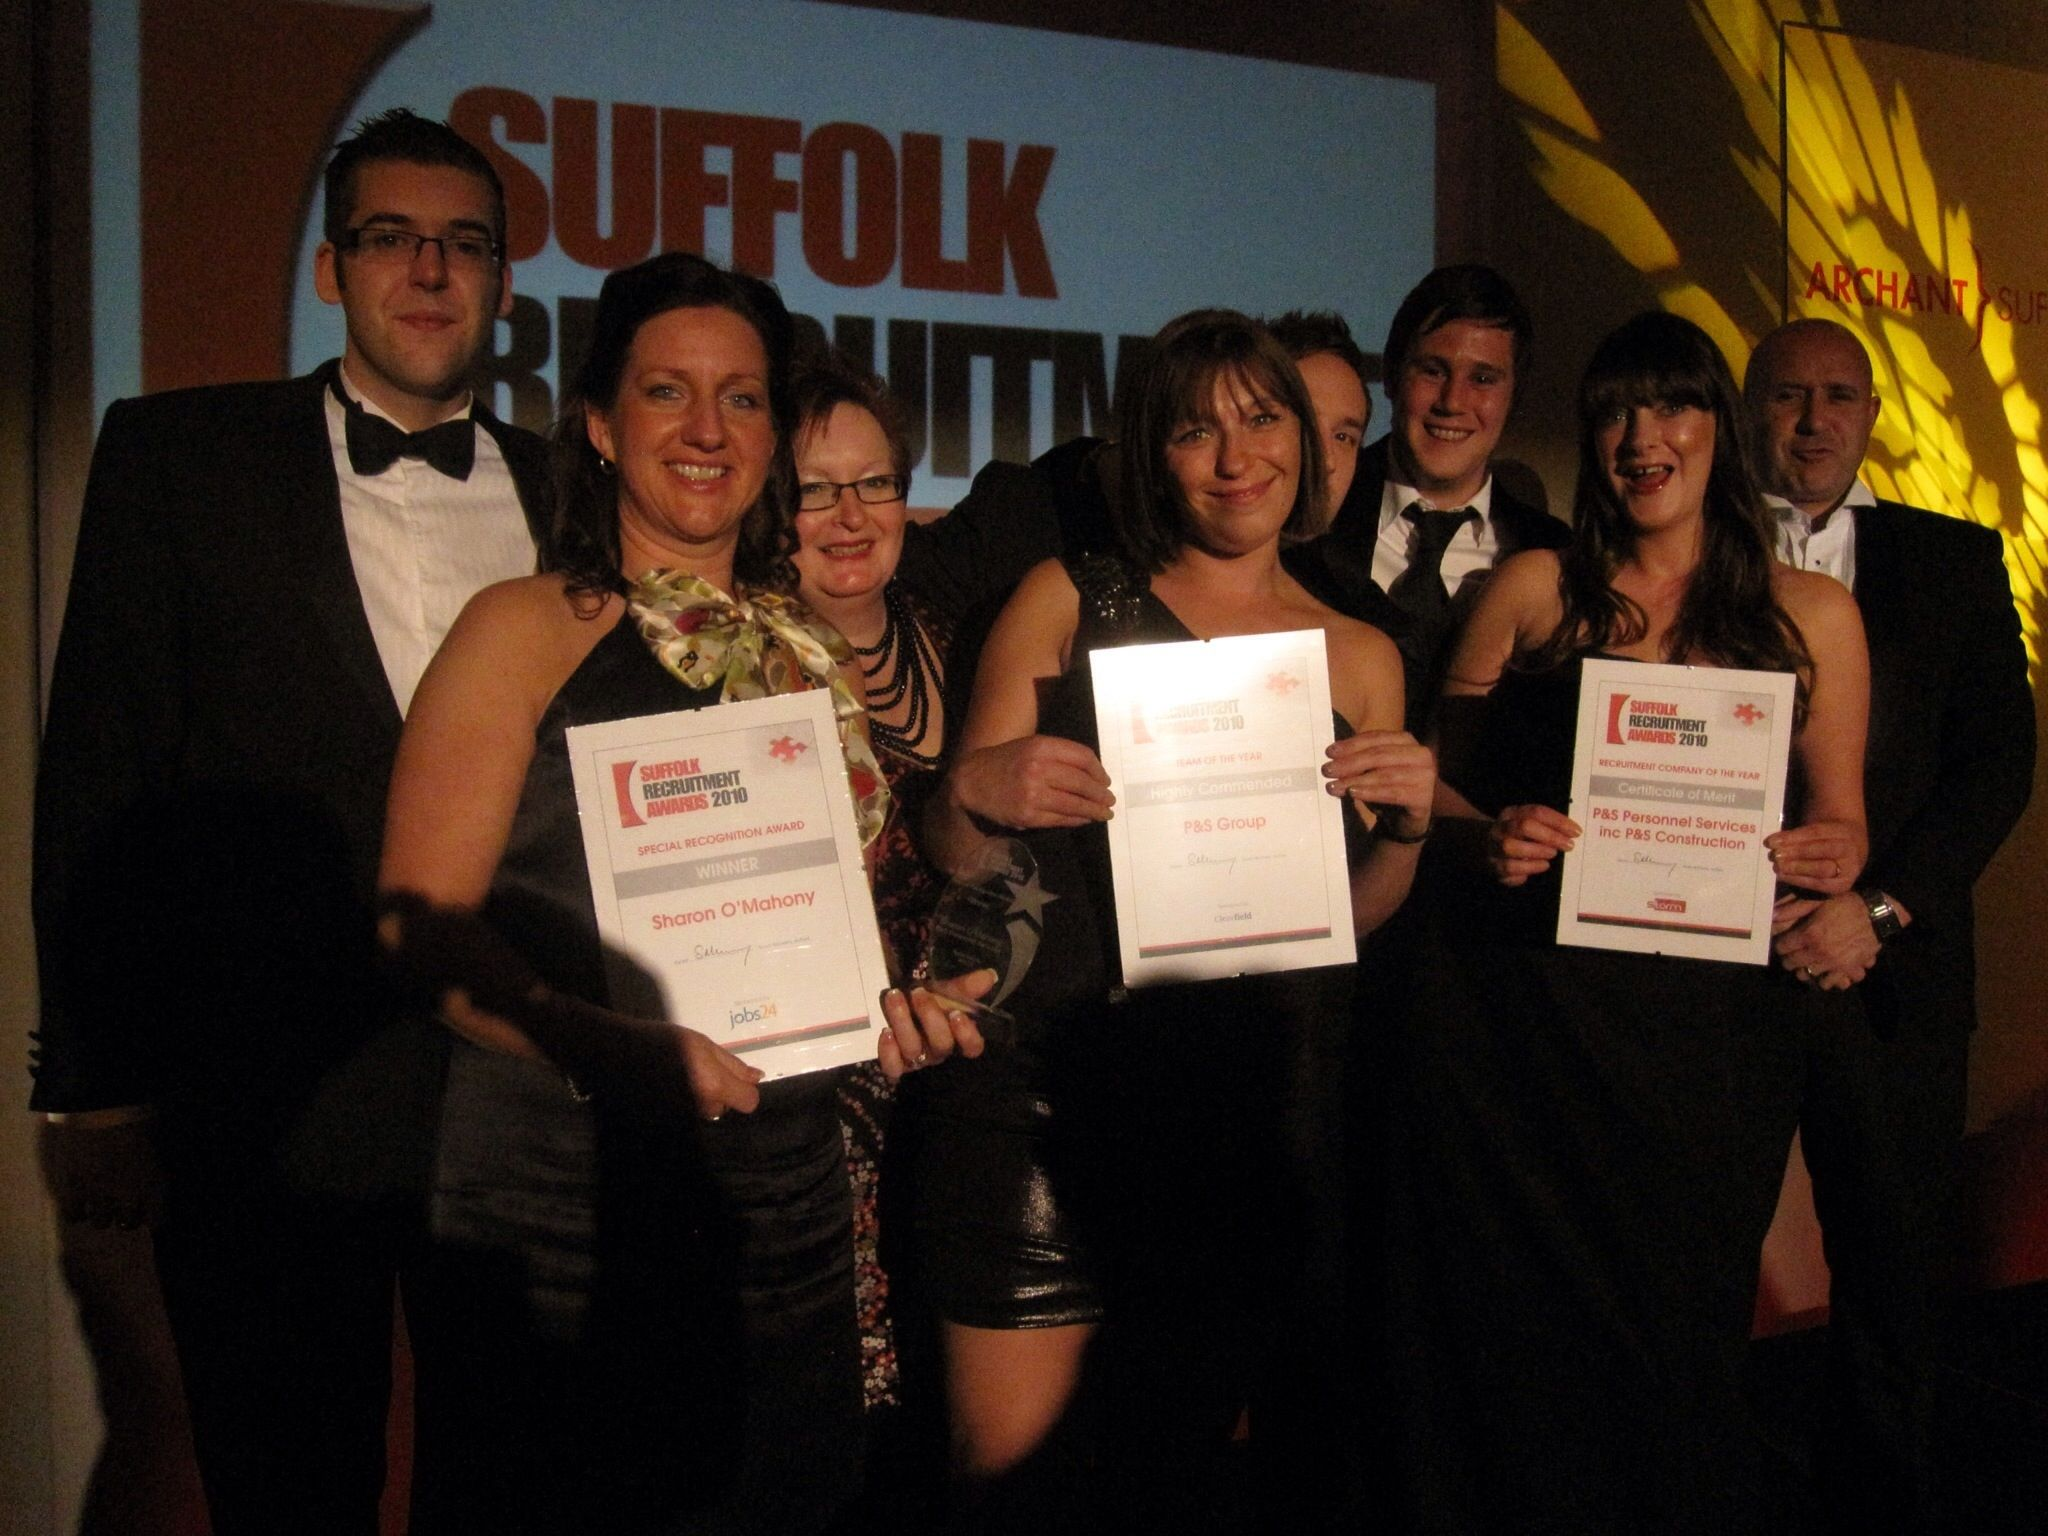 P&S Shine at the Suffolk Recruitment Awards 2010